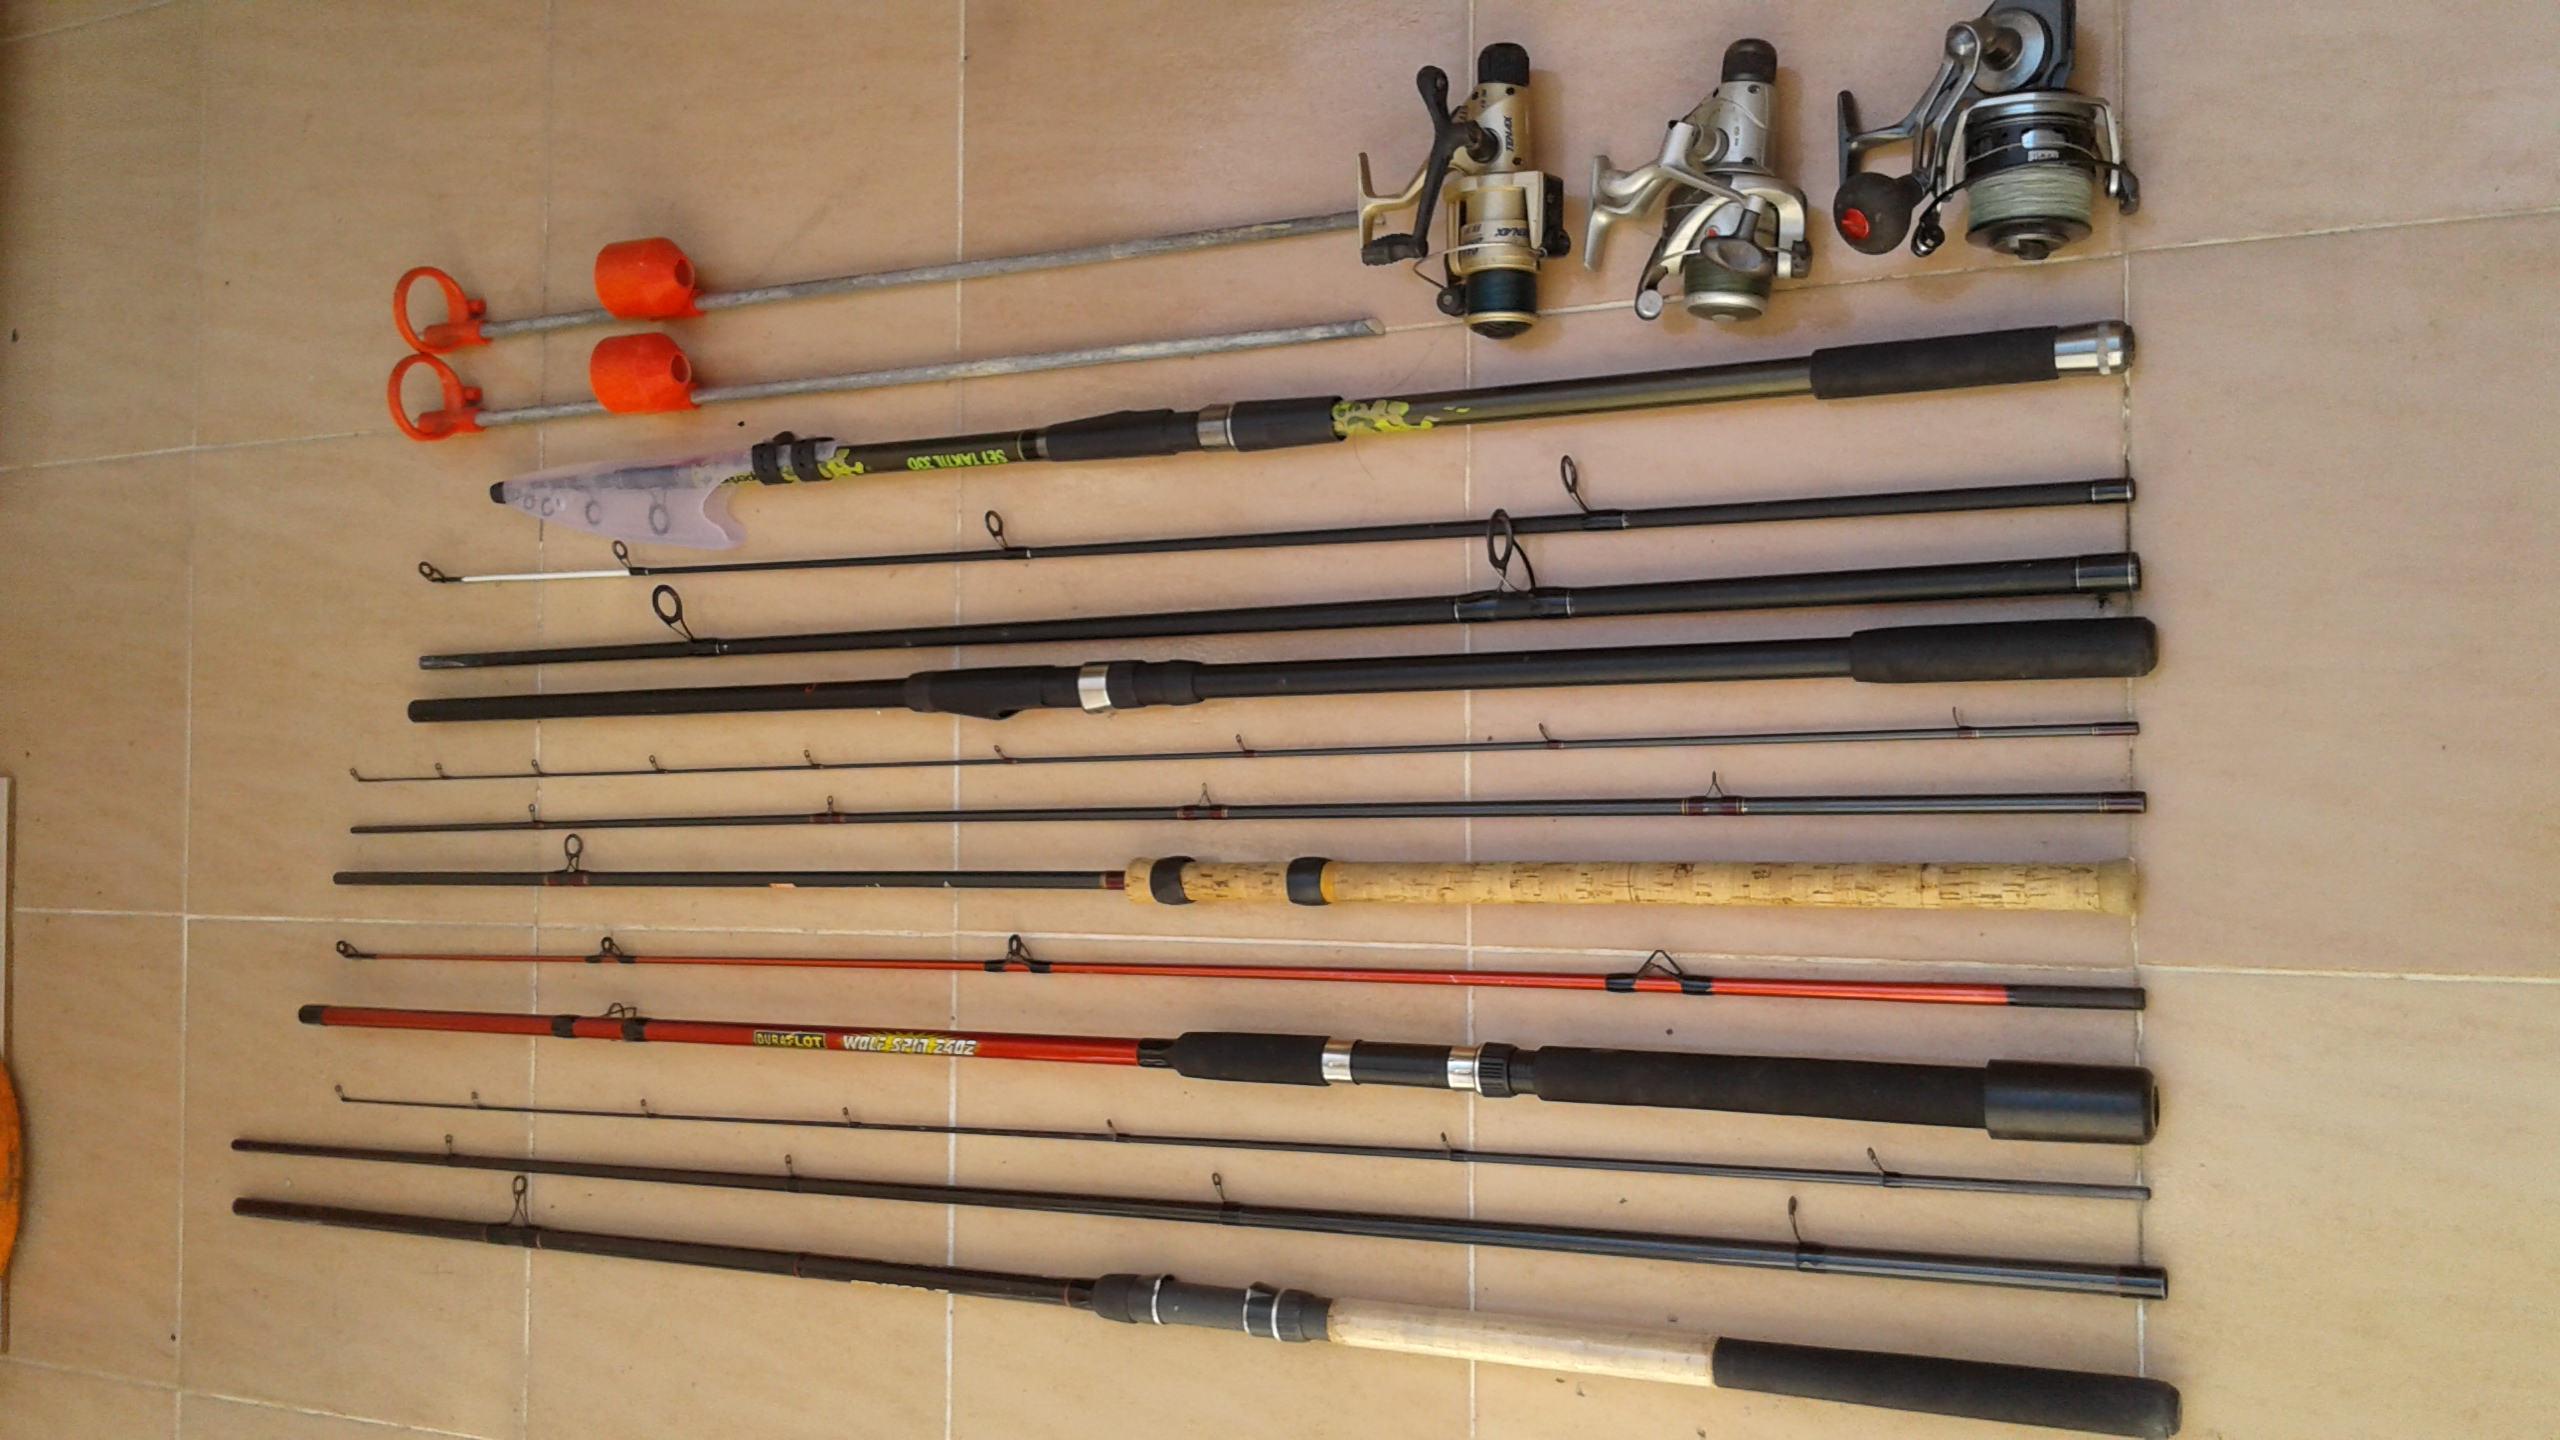 For sale: Fishing rods and reels